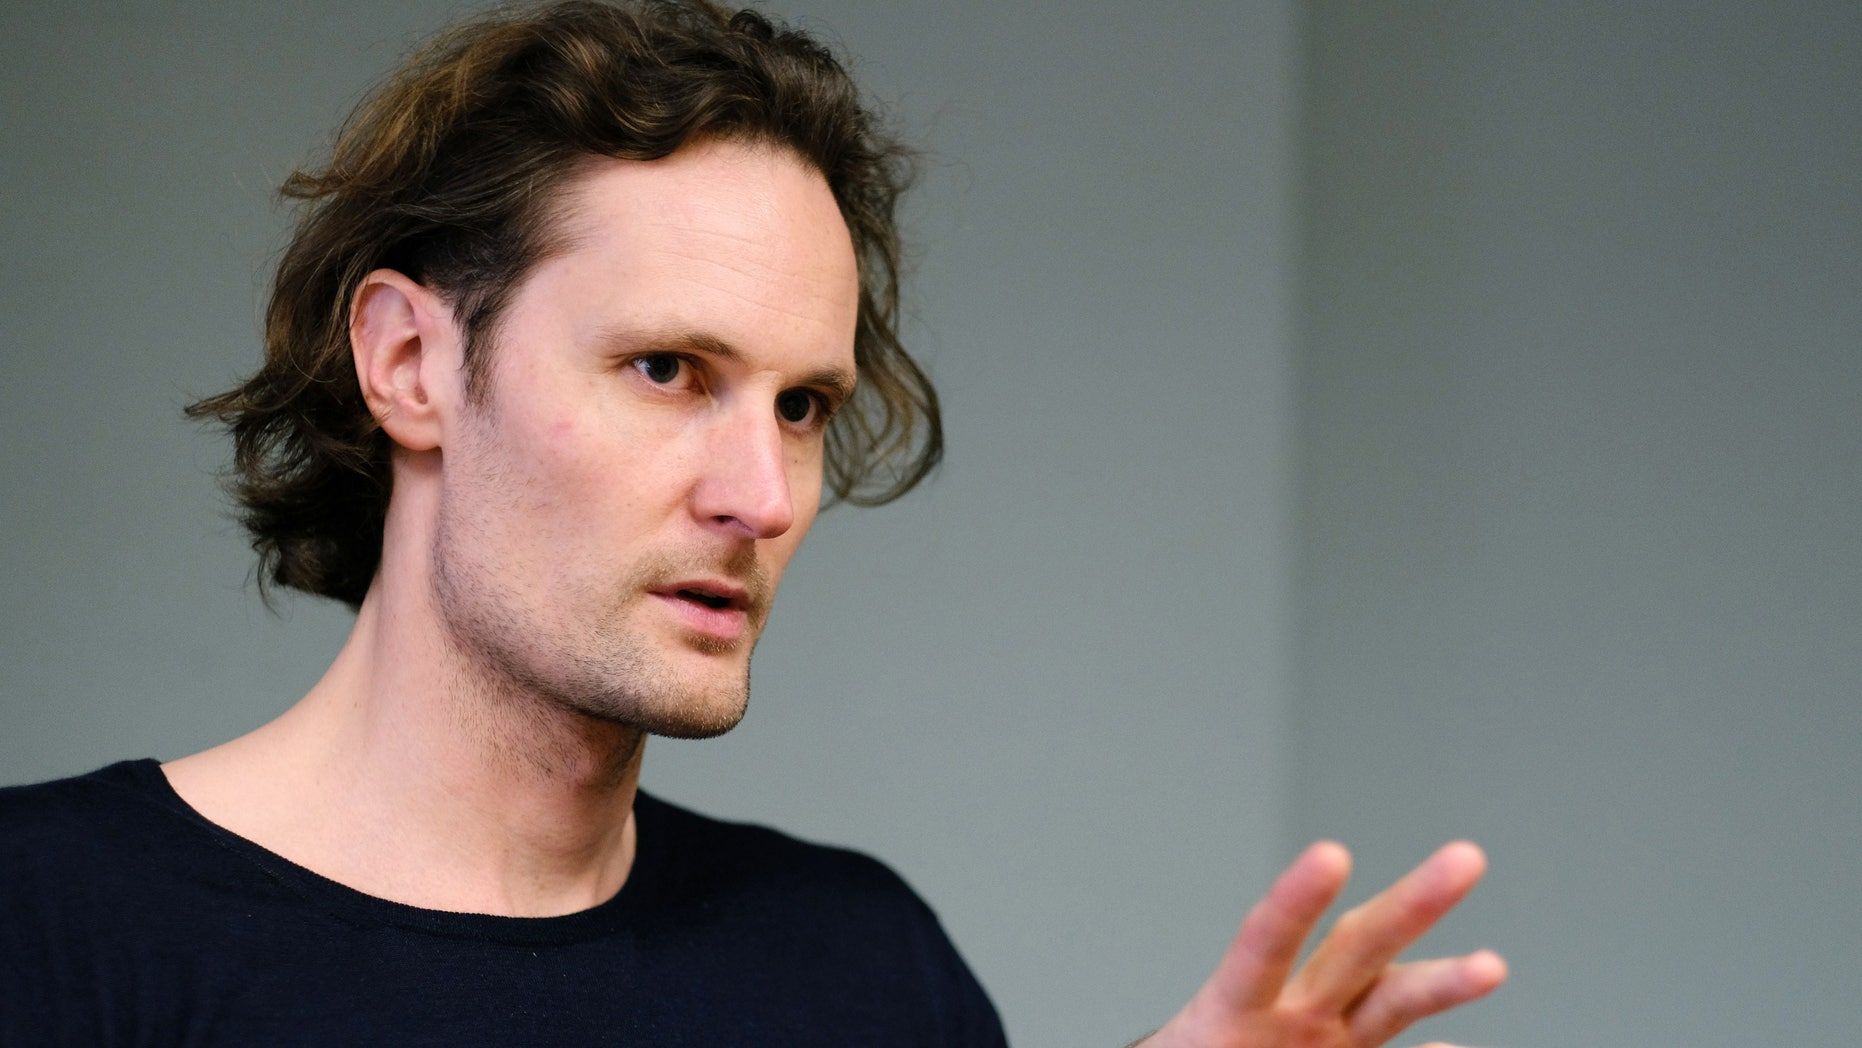 In this March 22, 2016, photo, Eric Wahlforss, the co-founder and chief technology officer of Soundcloud, talks during an interview in Los Angeles. Soundcloud is entering paid music streaming, hoping to turn its huge community of cover singers, dubstep remixers and wannabe stars into a bigger source of revenue. Soundcloud will have a staggering 125 million tracks available when the paid tier, Soundcloud Go, launches Tuesday, March 29, about four times that of other paid services. (AP Photo/Richard Vogel)